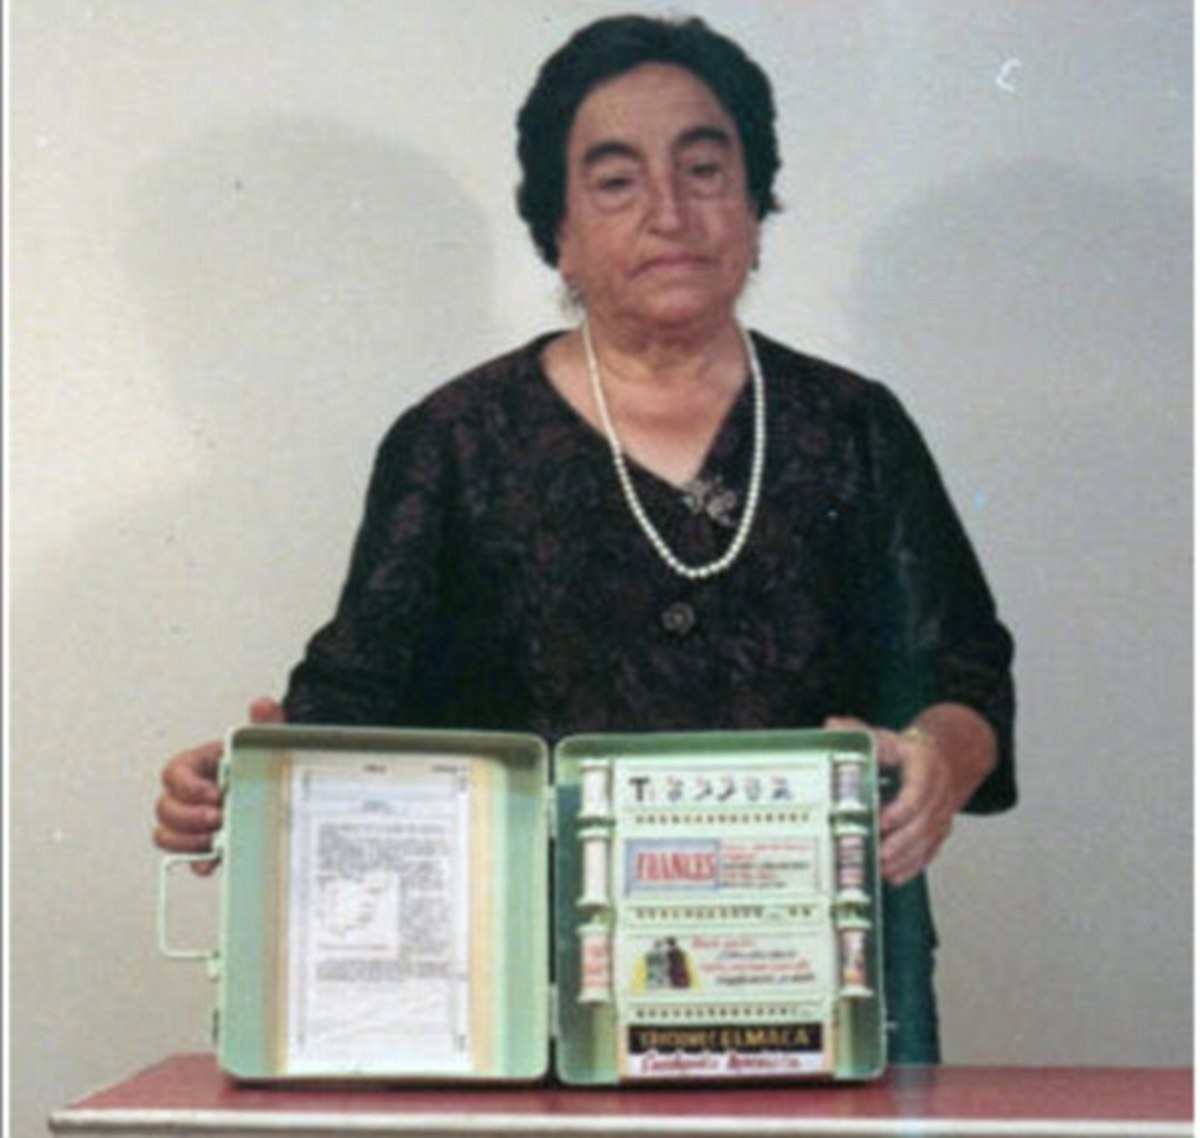 Angela Ruiz Robles with her Enciclopedia Mecánica